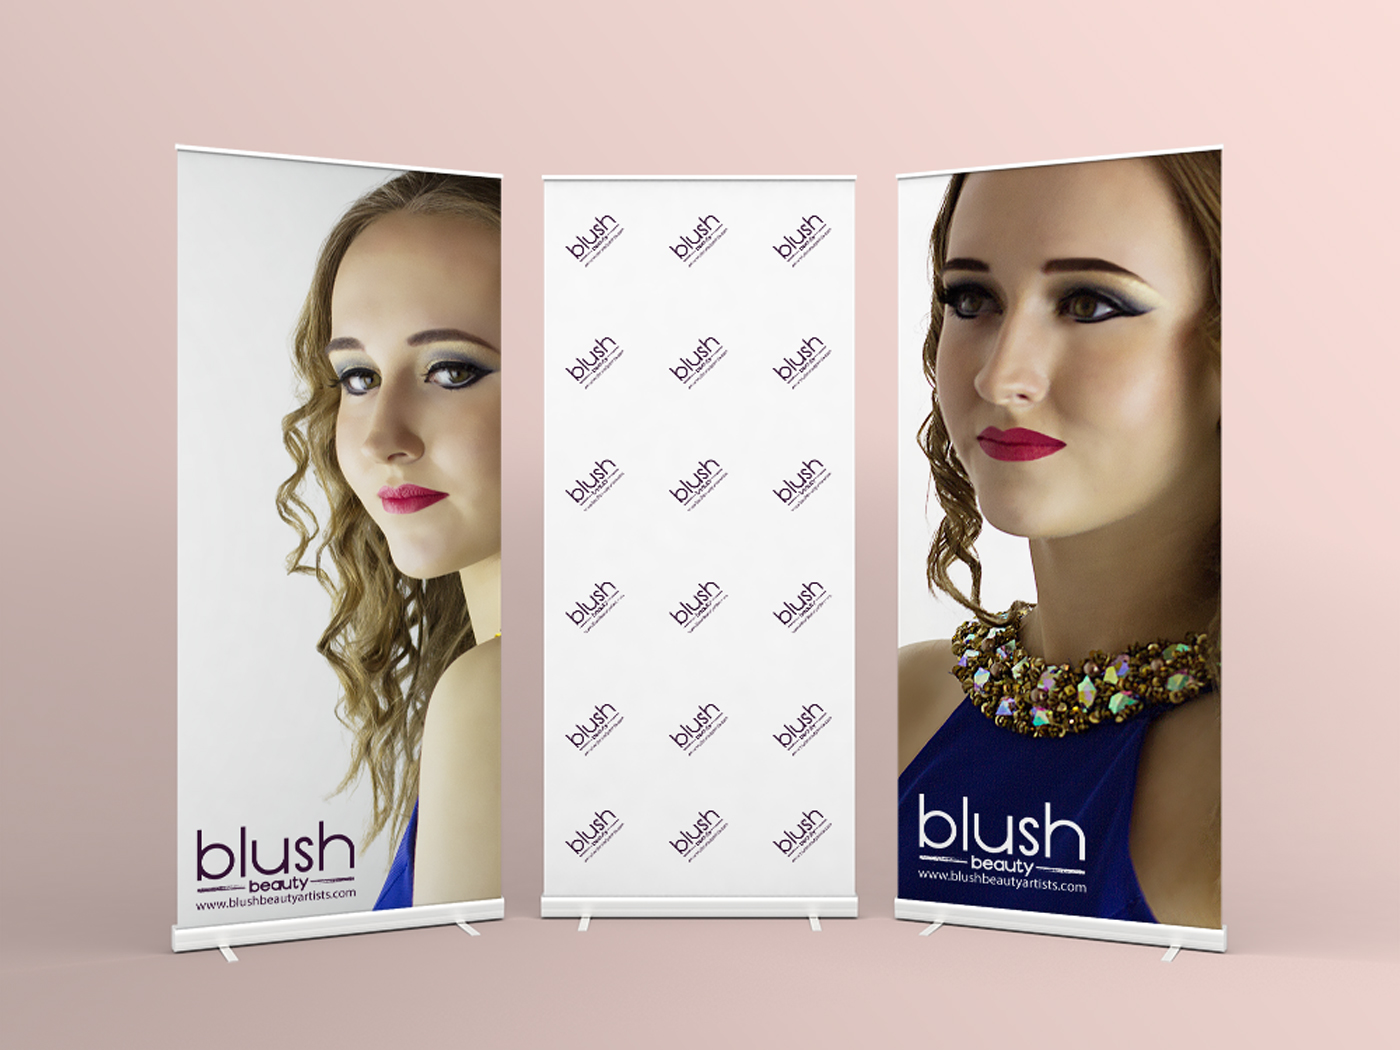 Roller banners were designed and supplied